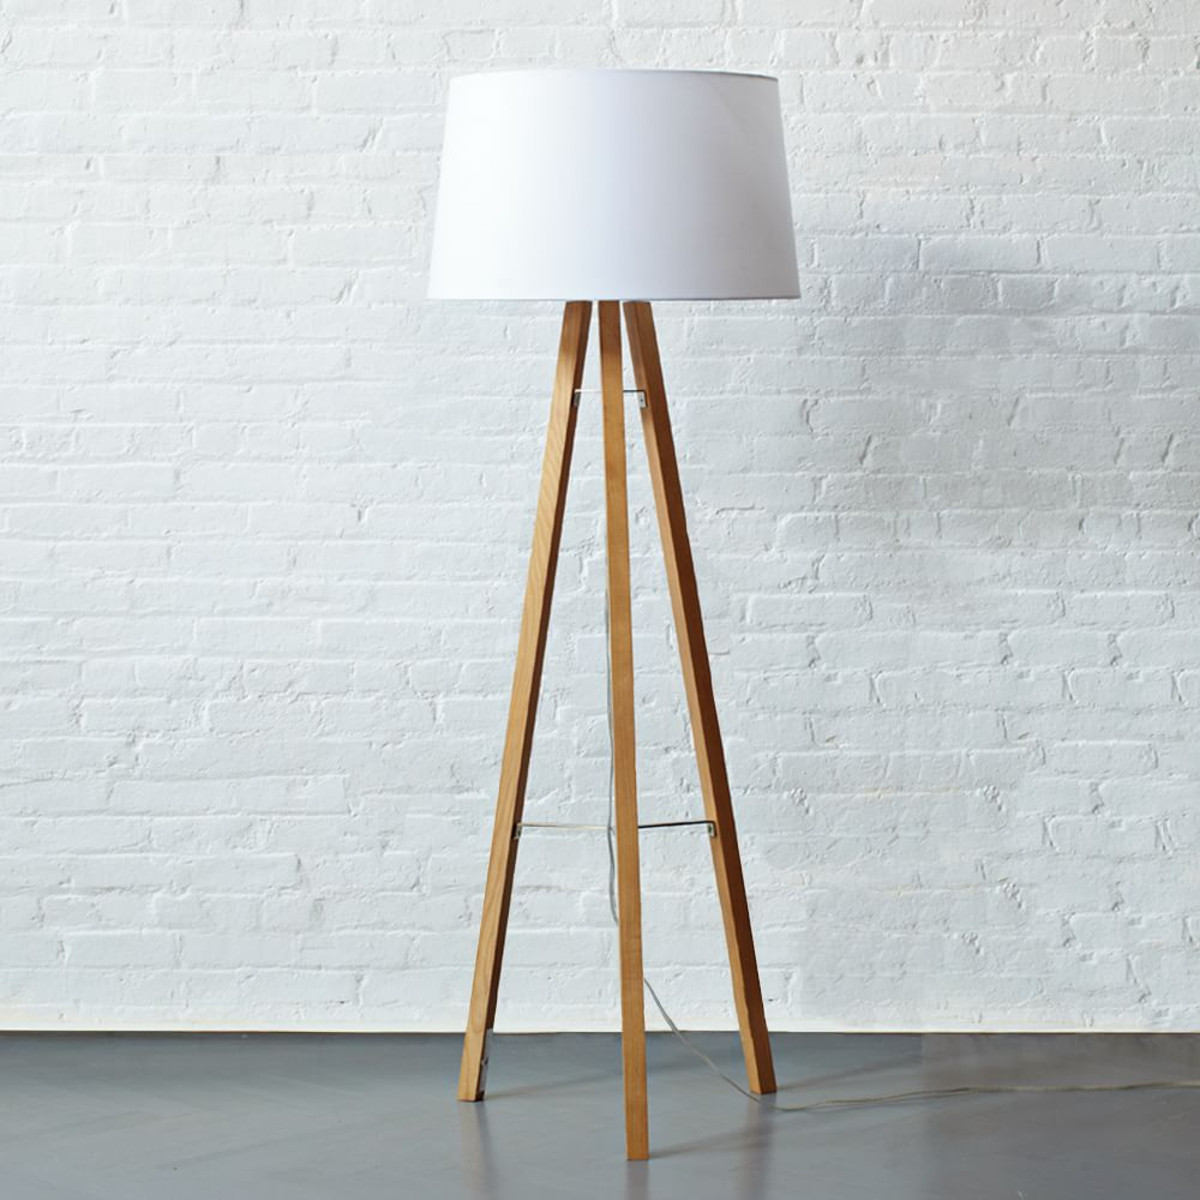 Tripod Lamp | Studio Tripod Lamp | Wood Tripod Lamp